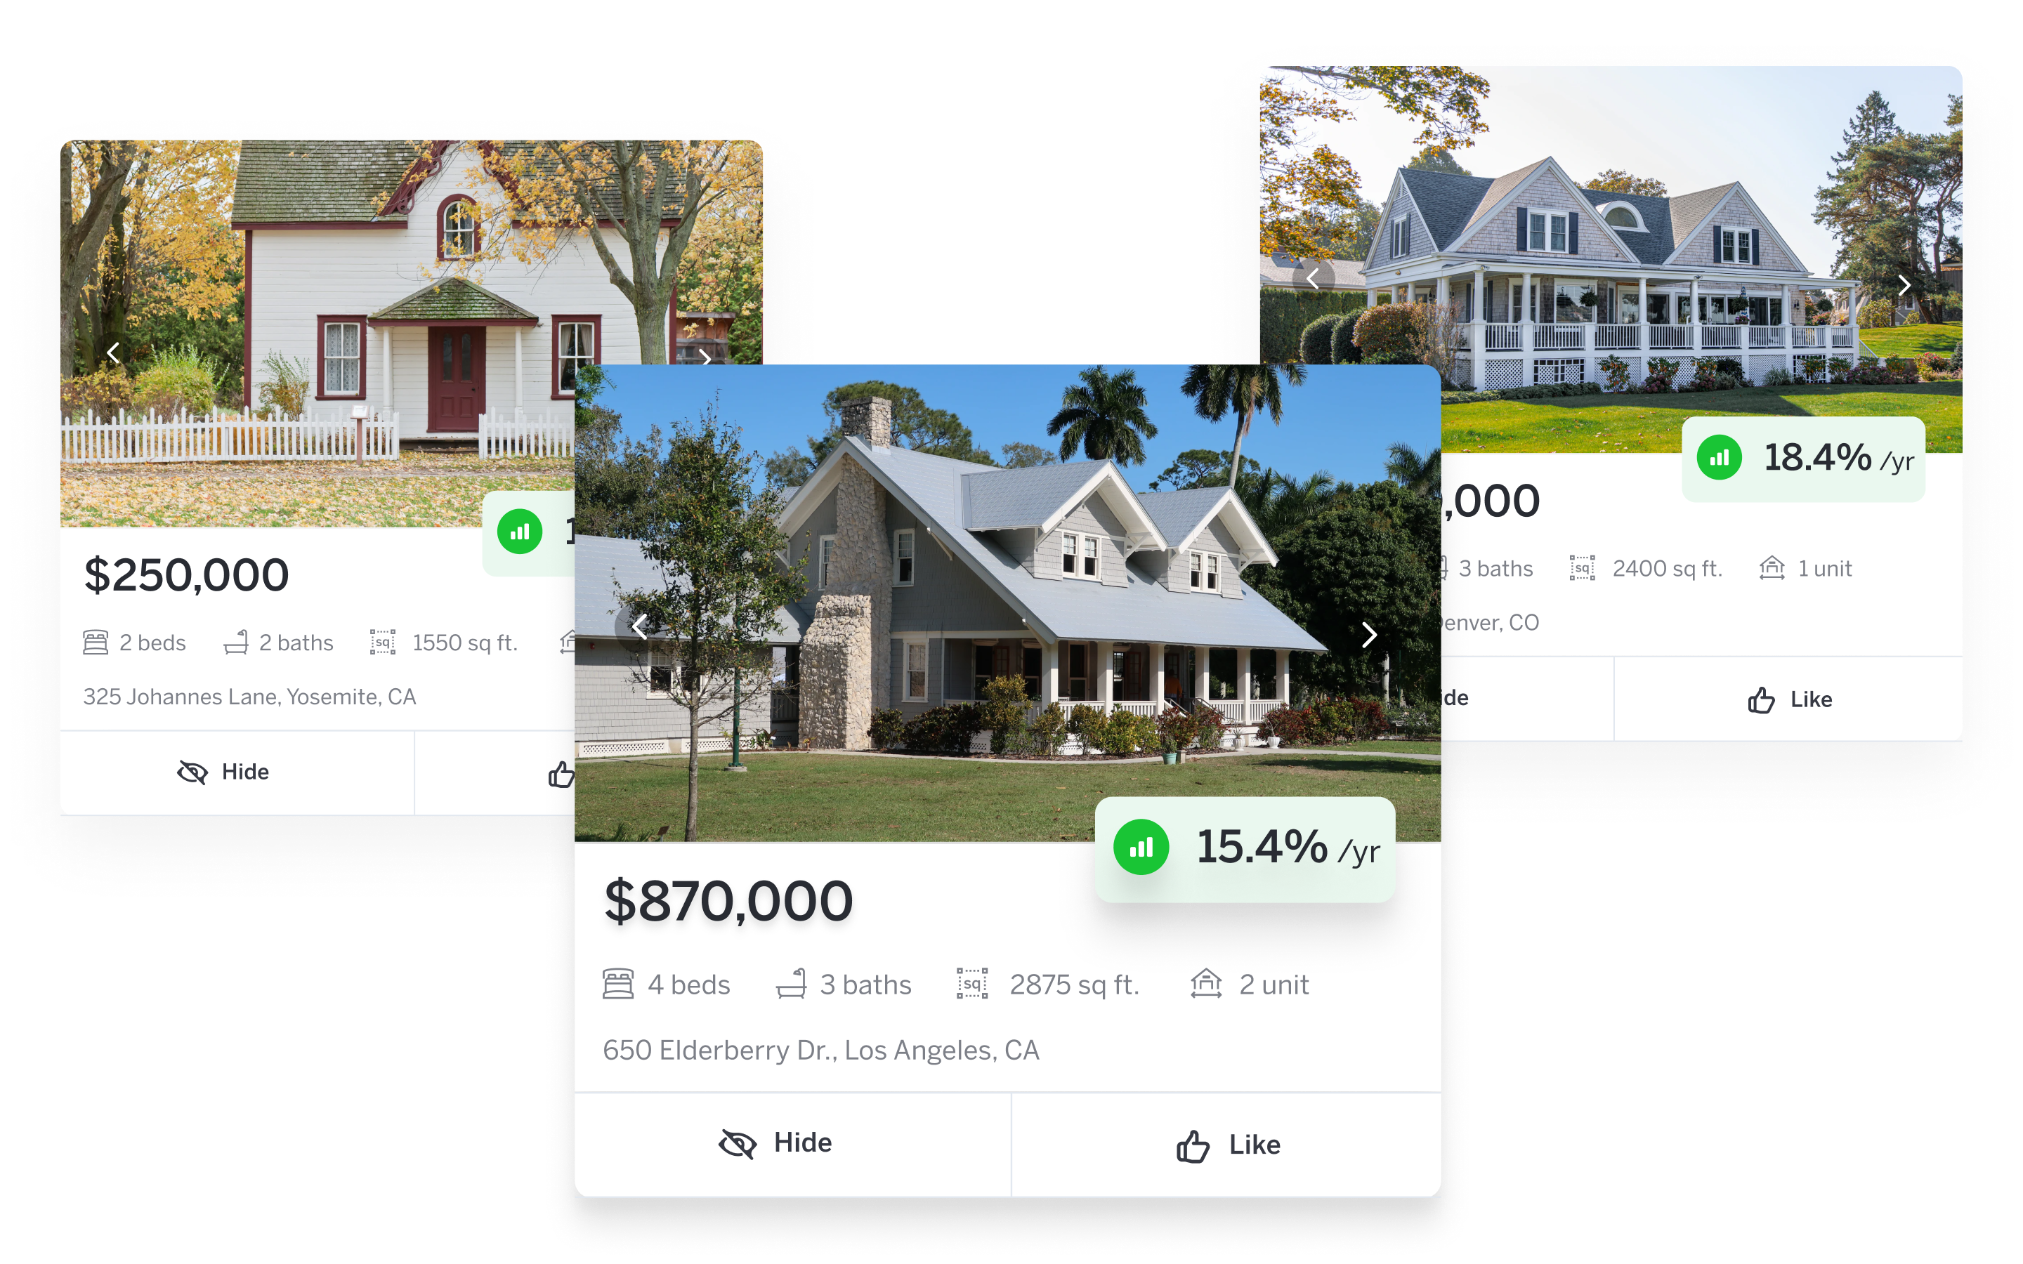 Matched Properties